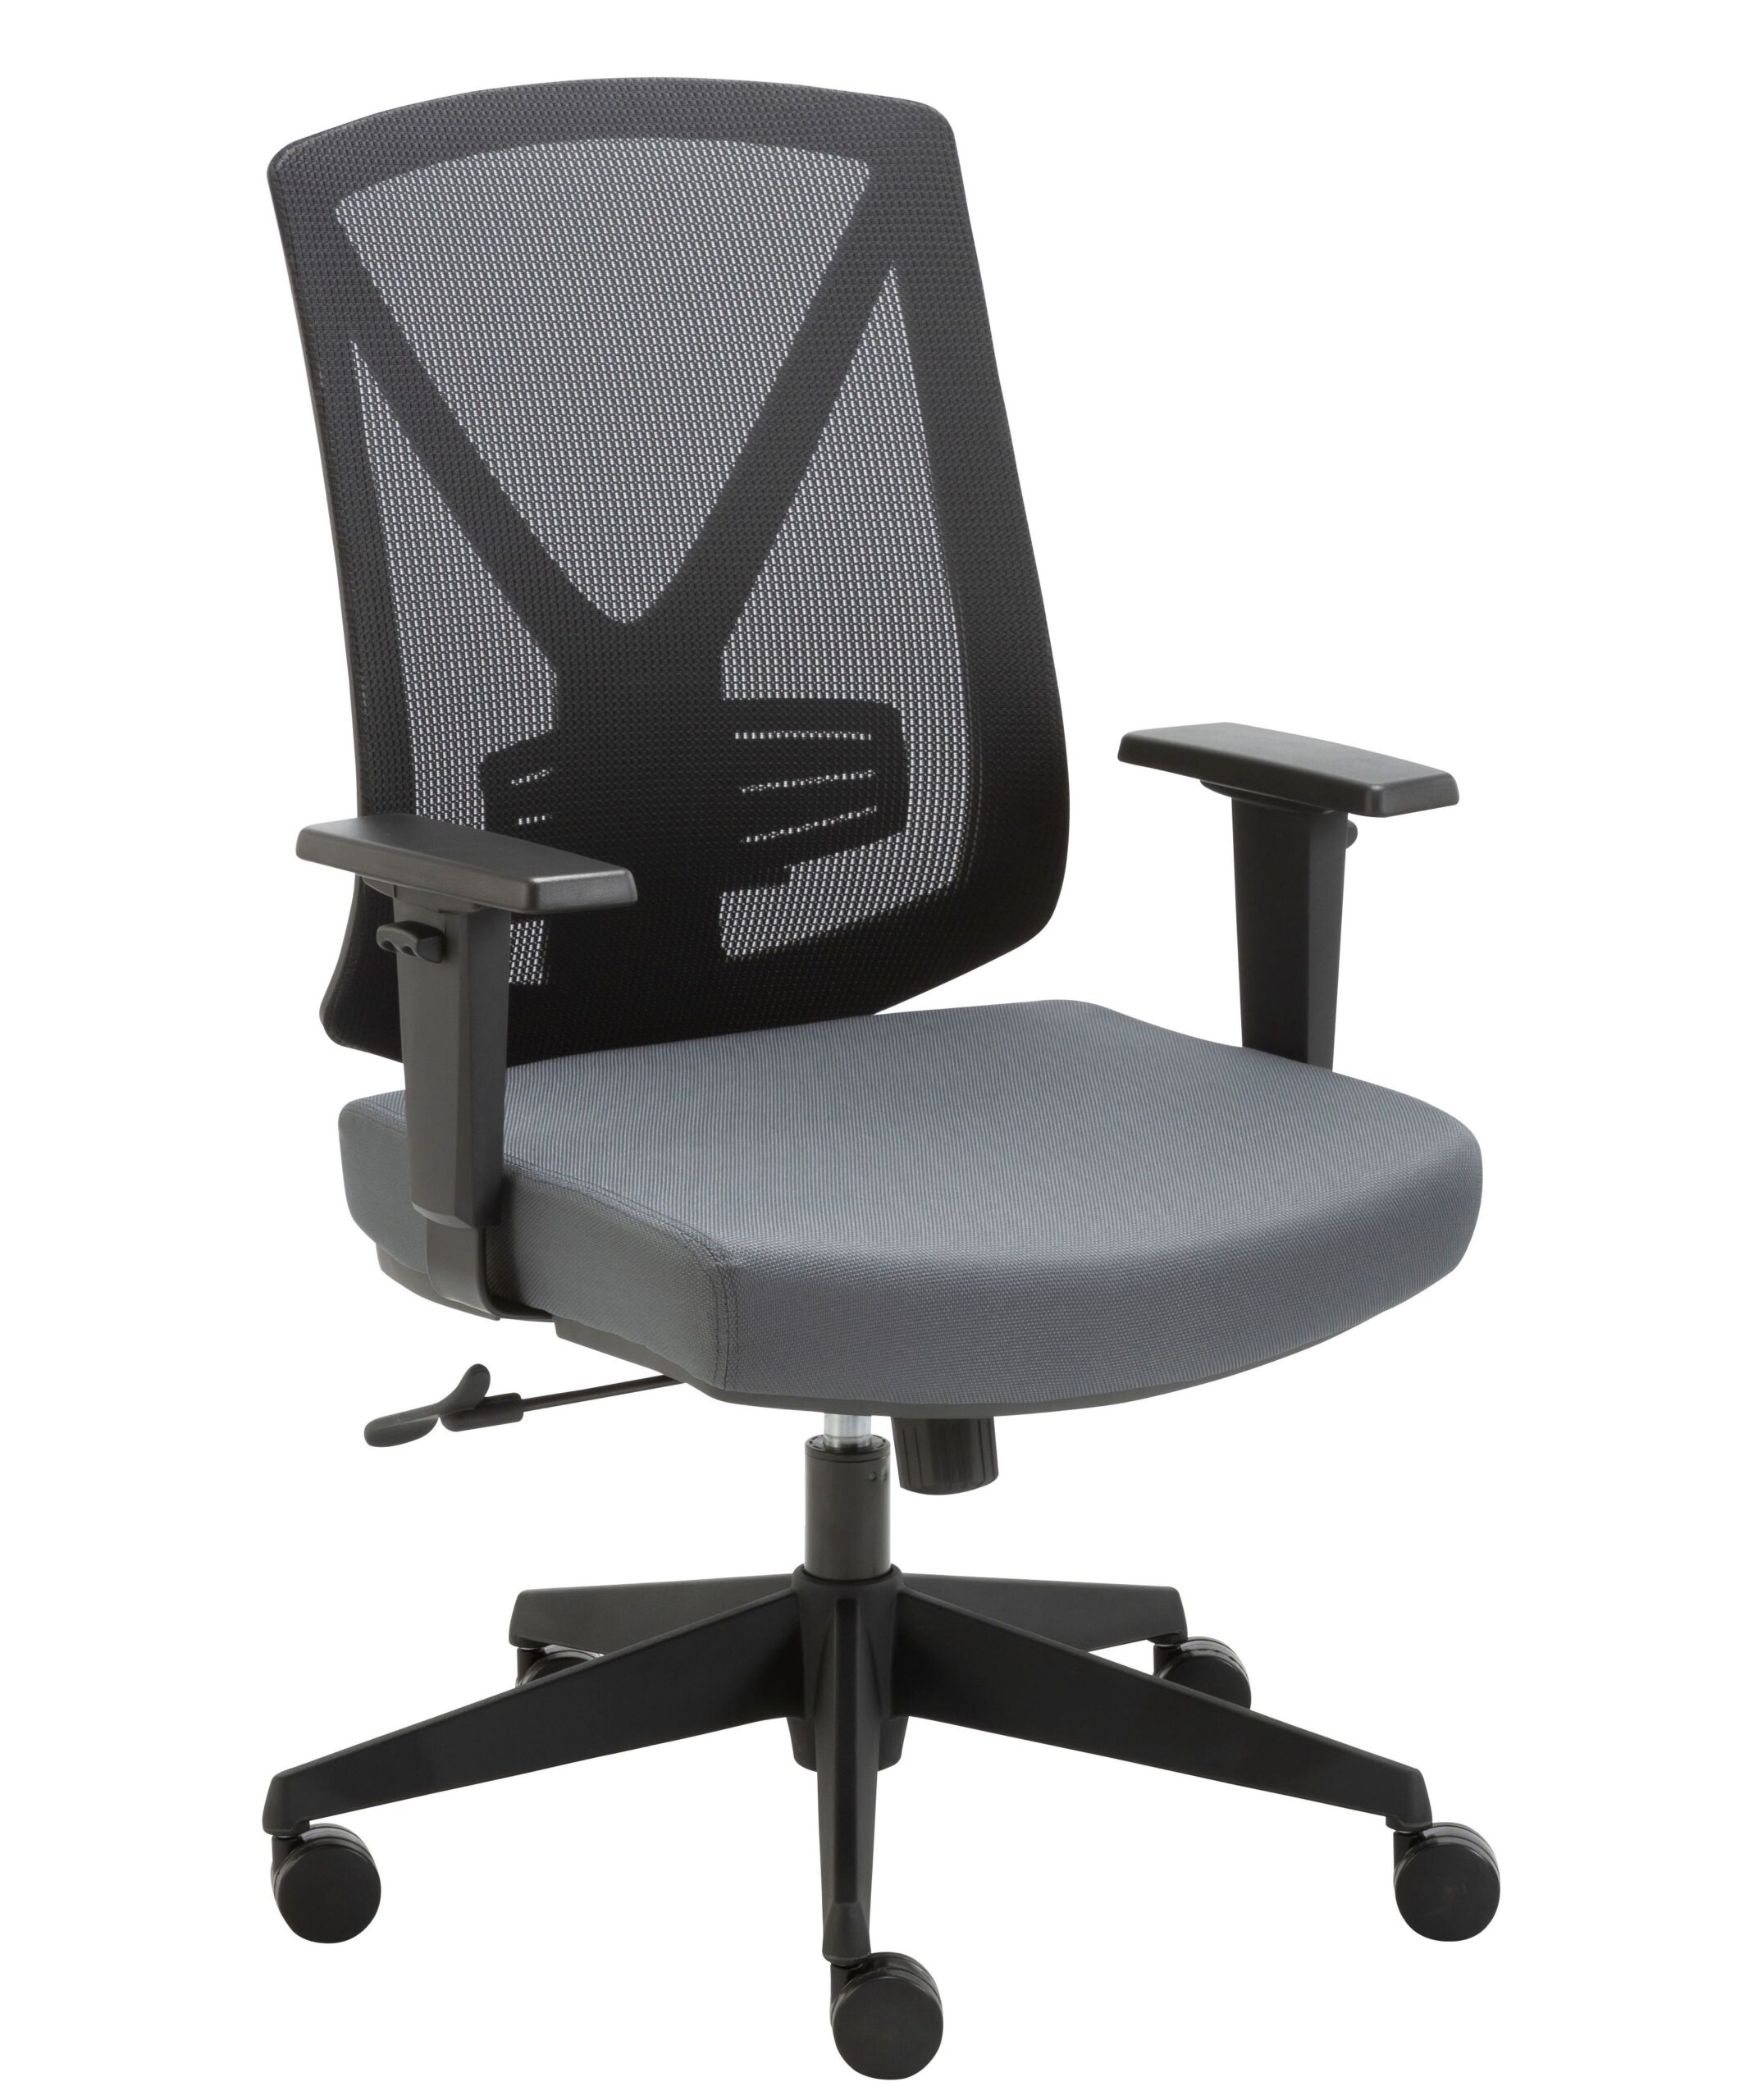 Miro Ergonomic Mesh Office Chair